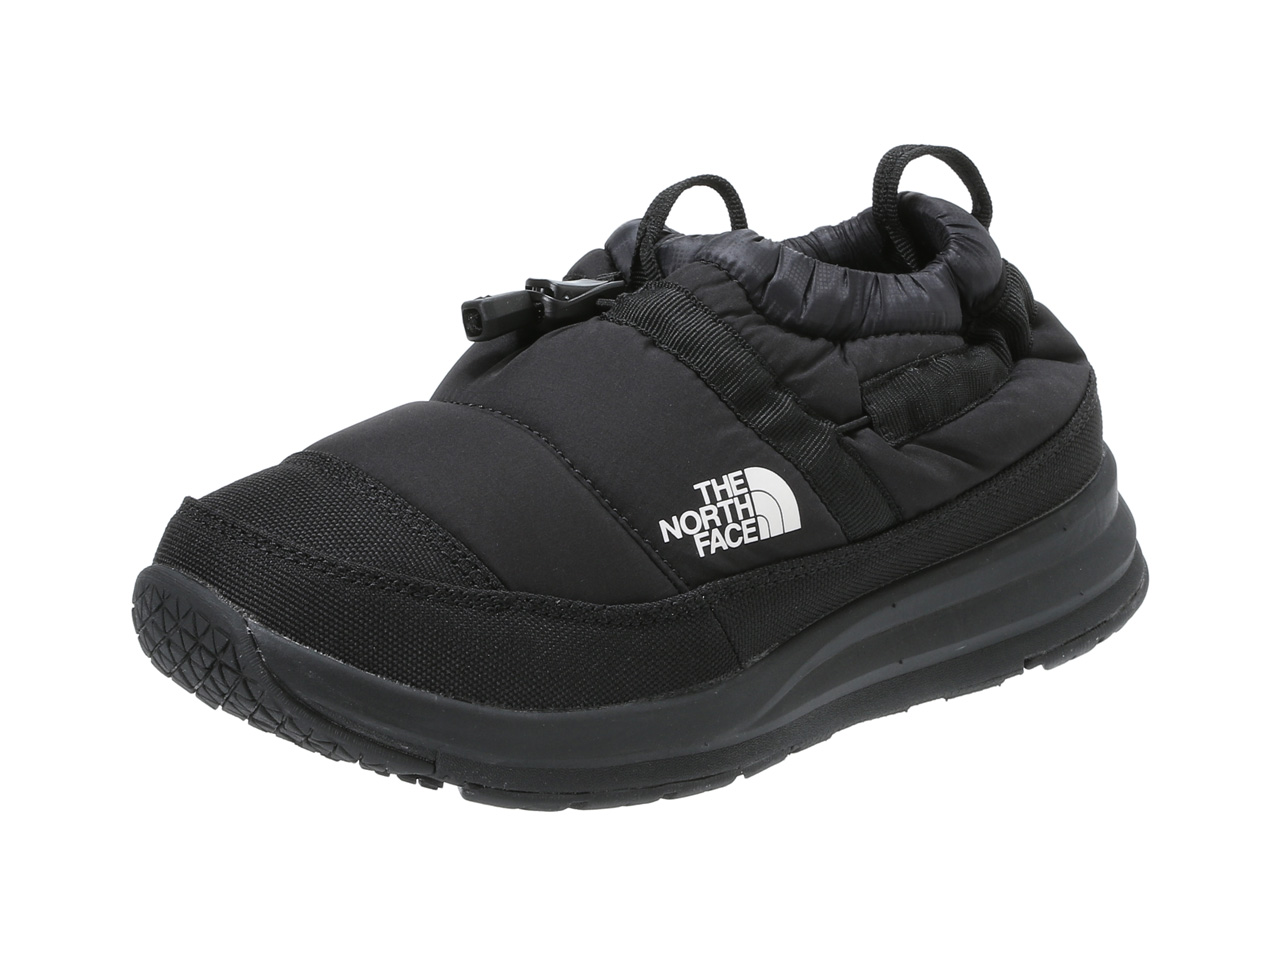 【10%OFF!】THE NORTH FACE NSE Traction Lite Moc IV(NF51985)【ザノースフェース】